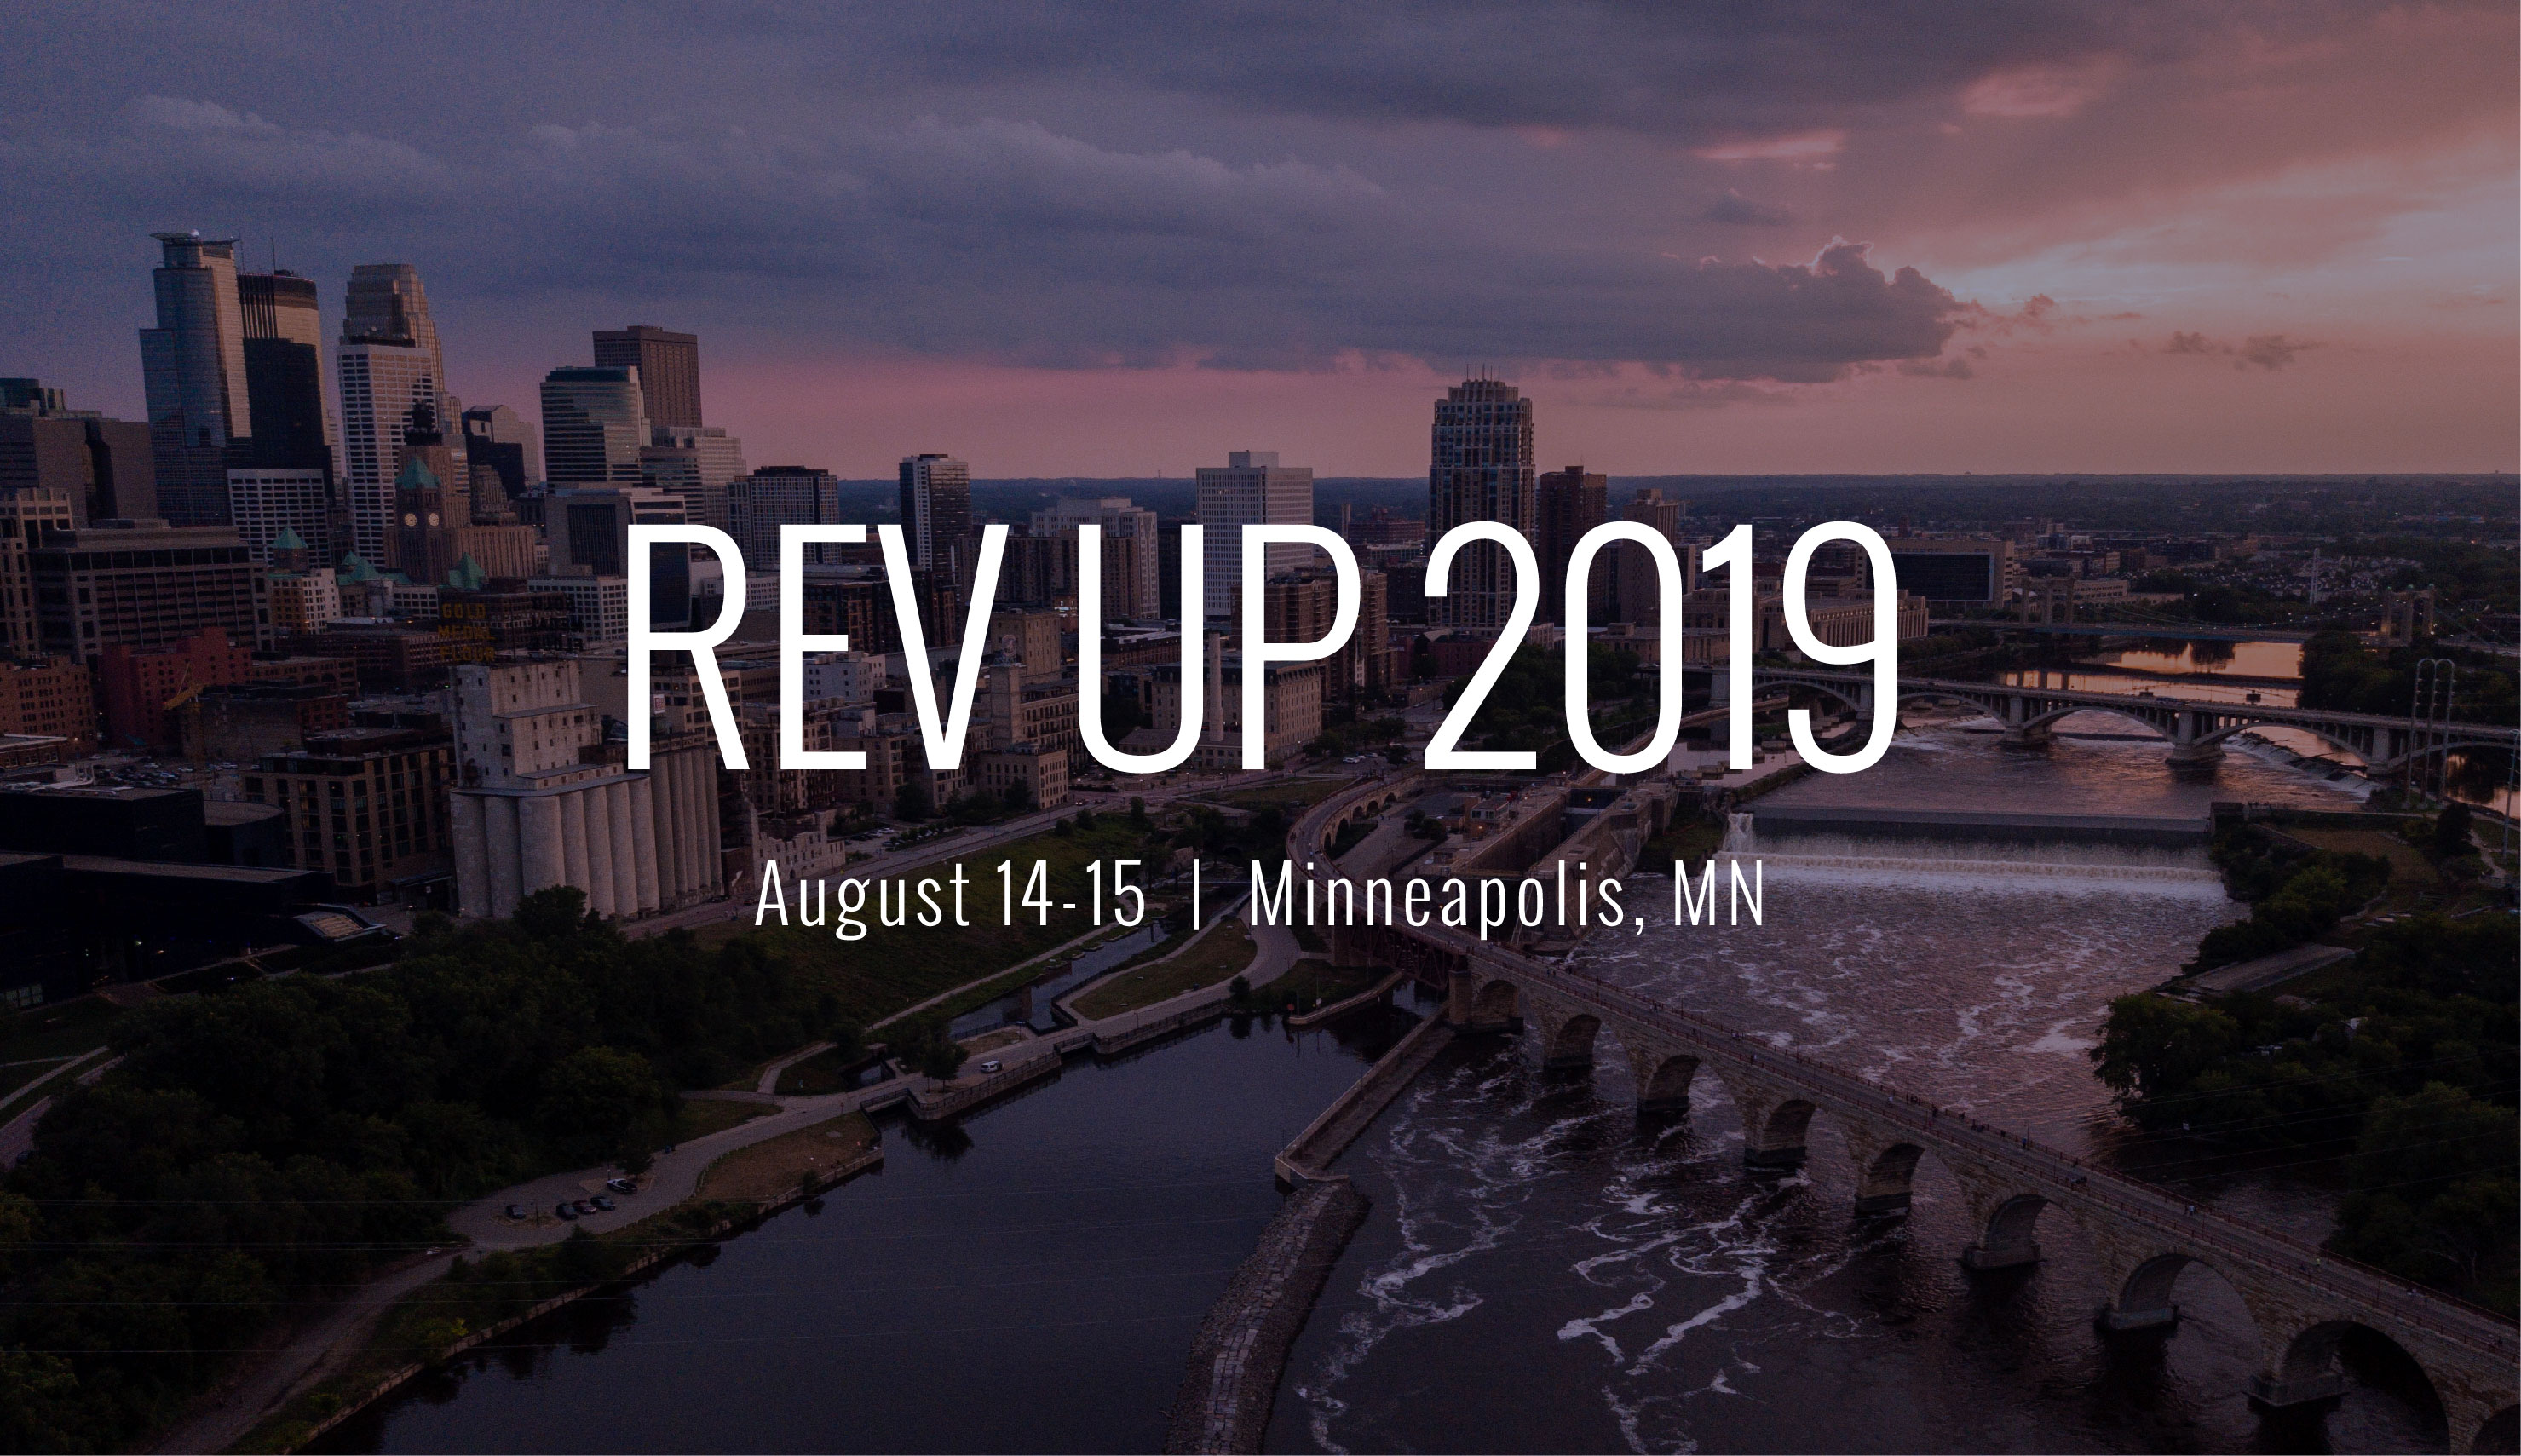 Revel Announces Inaugural Healthcare Innovation Conference August 14-15, 2019